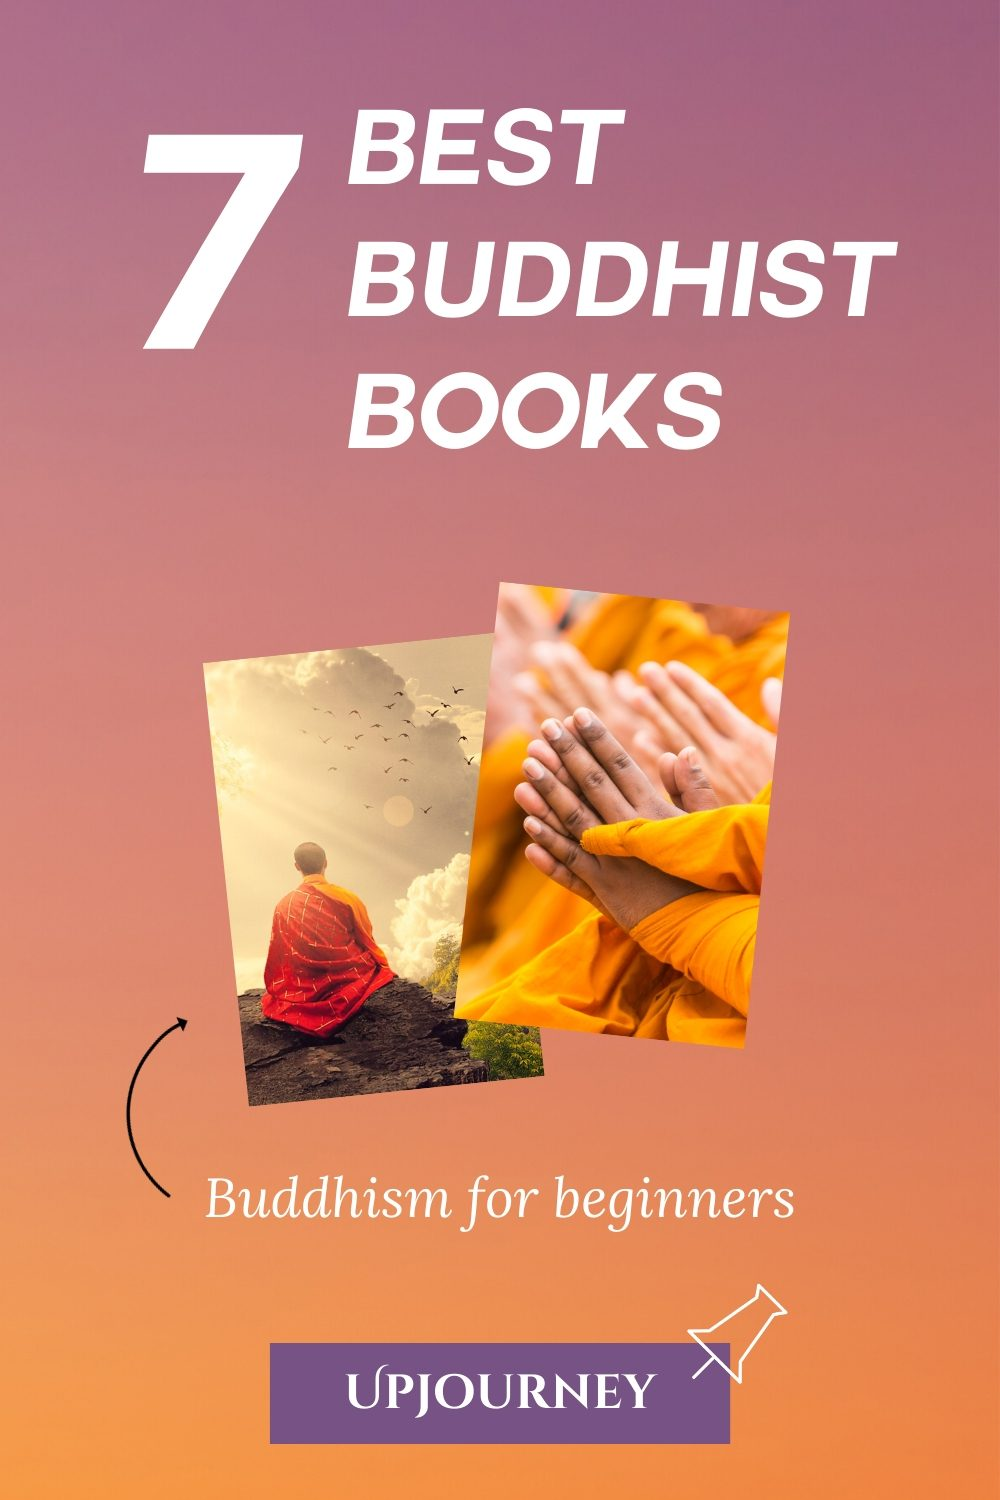 Best Buddhist Books